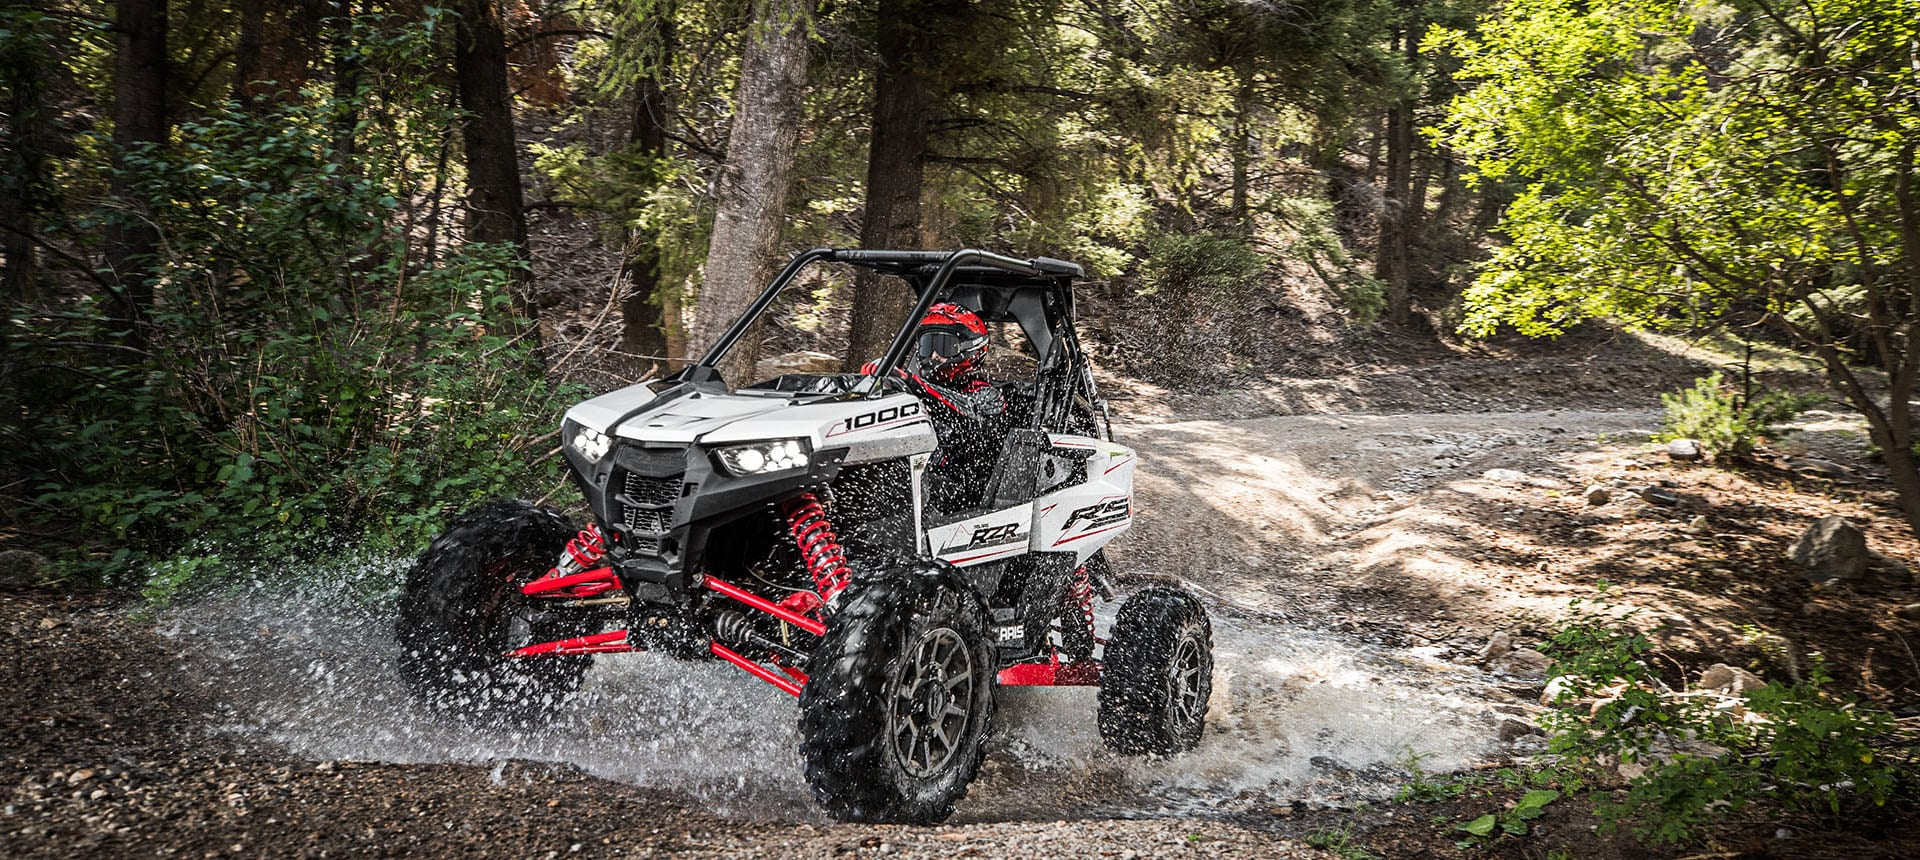 RZR RS1 EXTREME OFFROAD VEHICLE